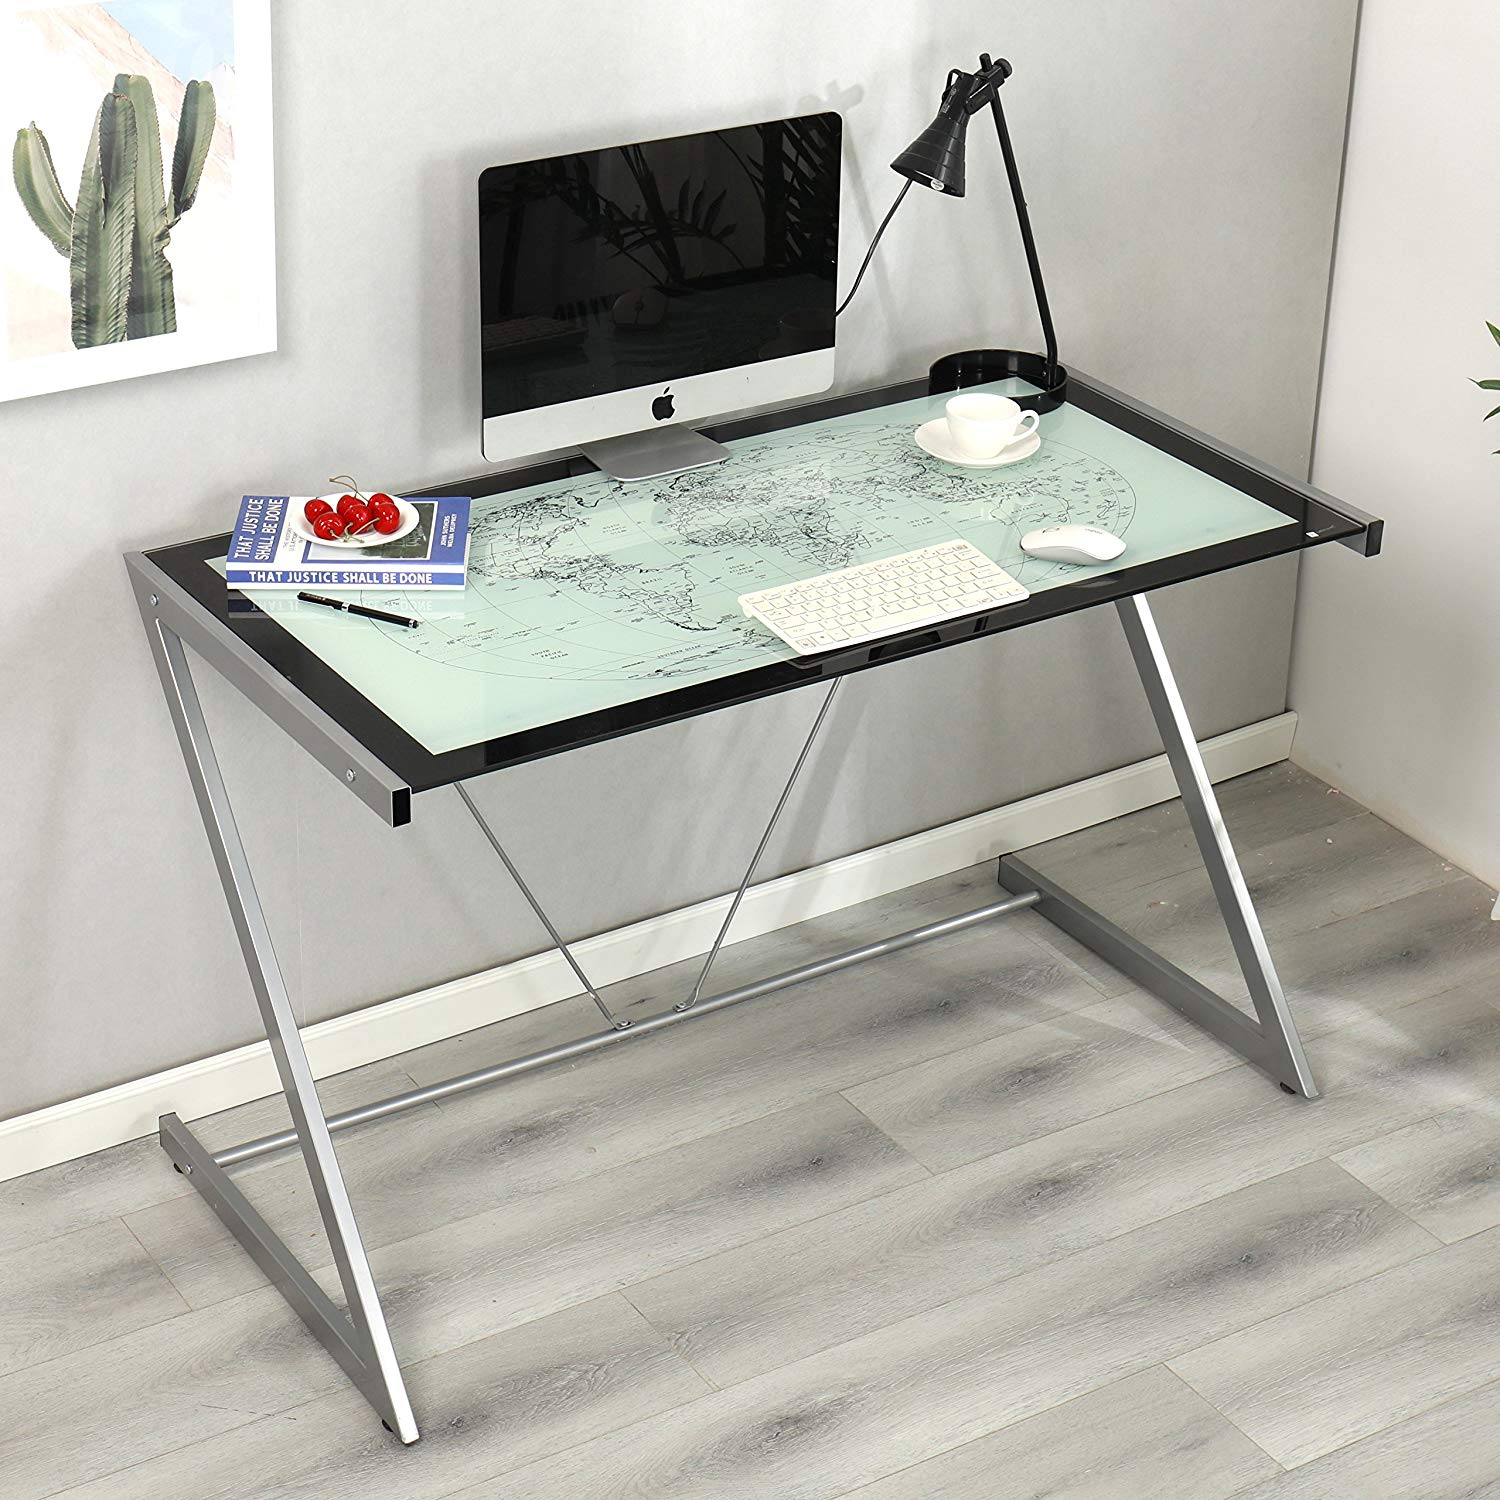 Columbus world map tempered glass desk with silver frame daals columbus world map tempered glass desk with silver frame gumiabroncs